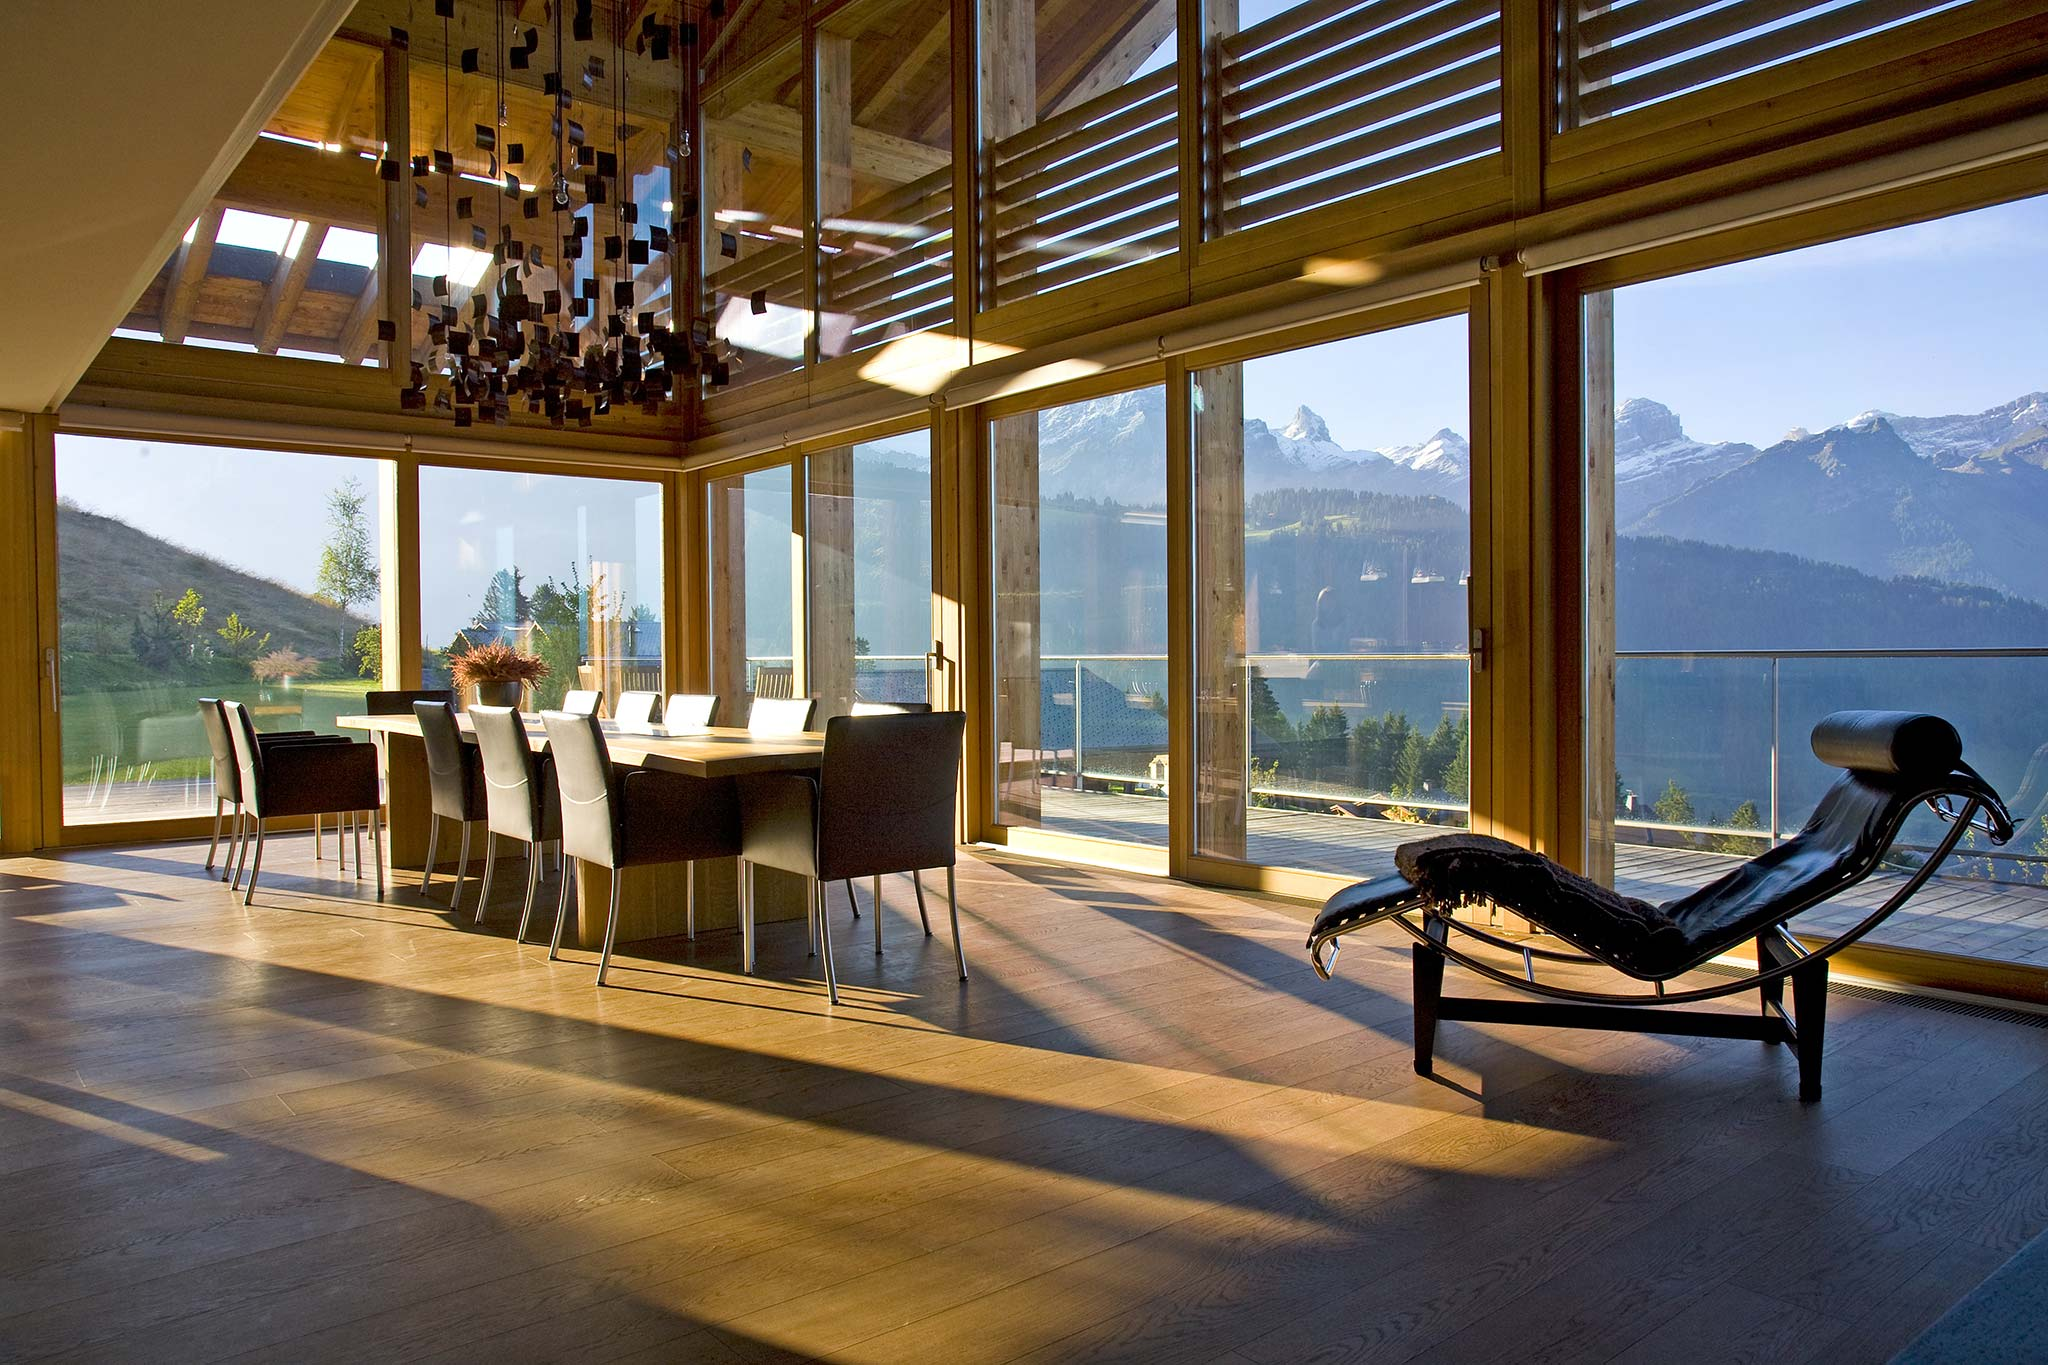 Modern swiss chalet interior design callender howorth - Chalet architectuur ...